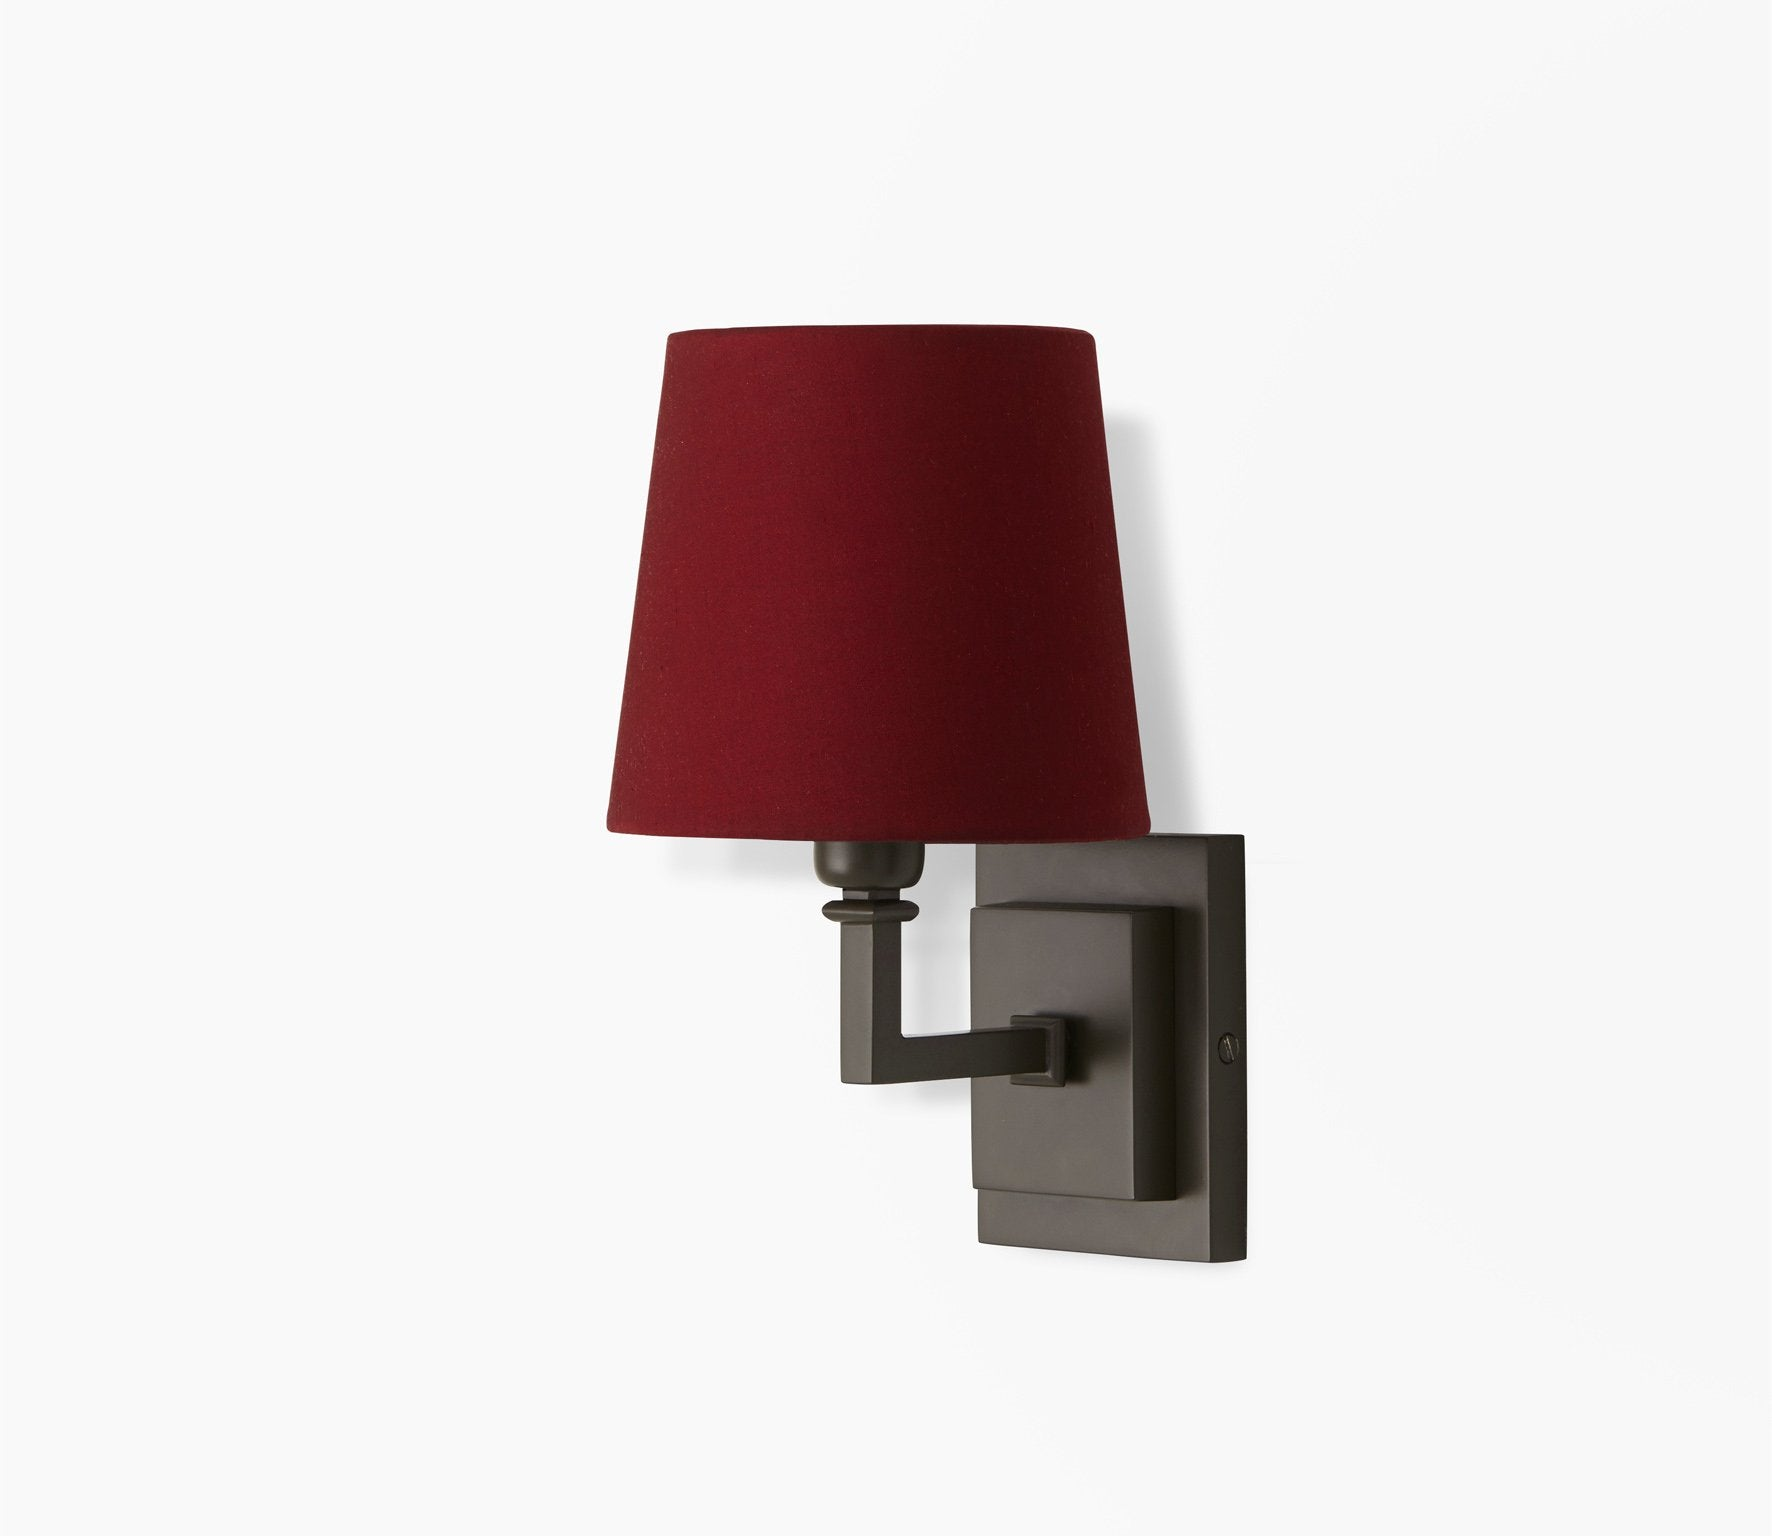 Parker Wall Light with Drum Shade Product Image 9